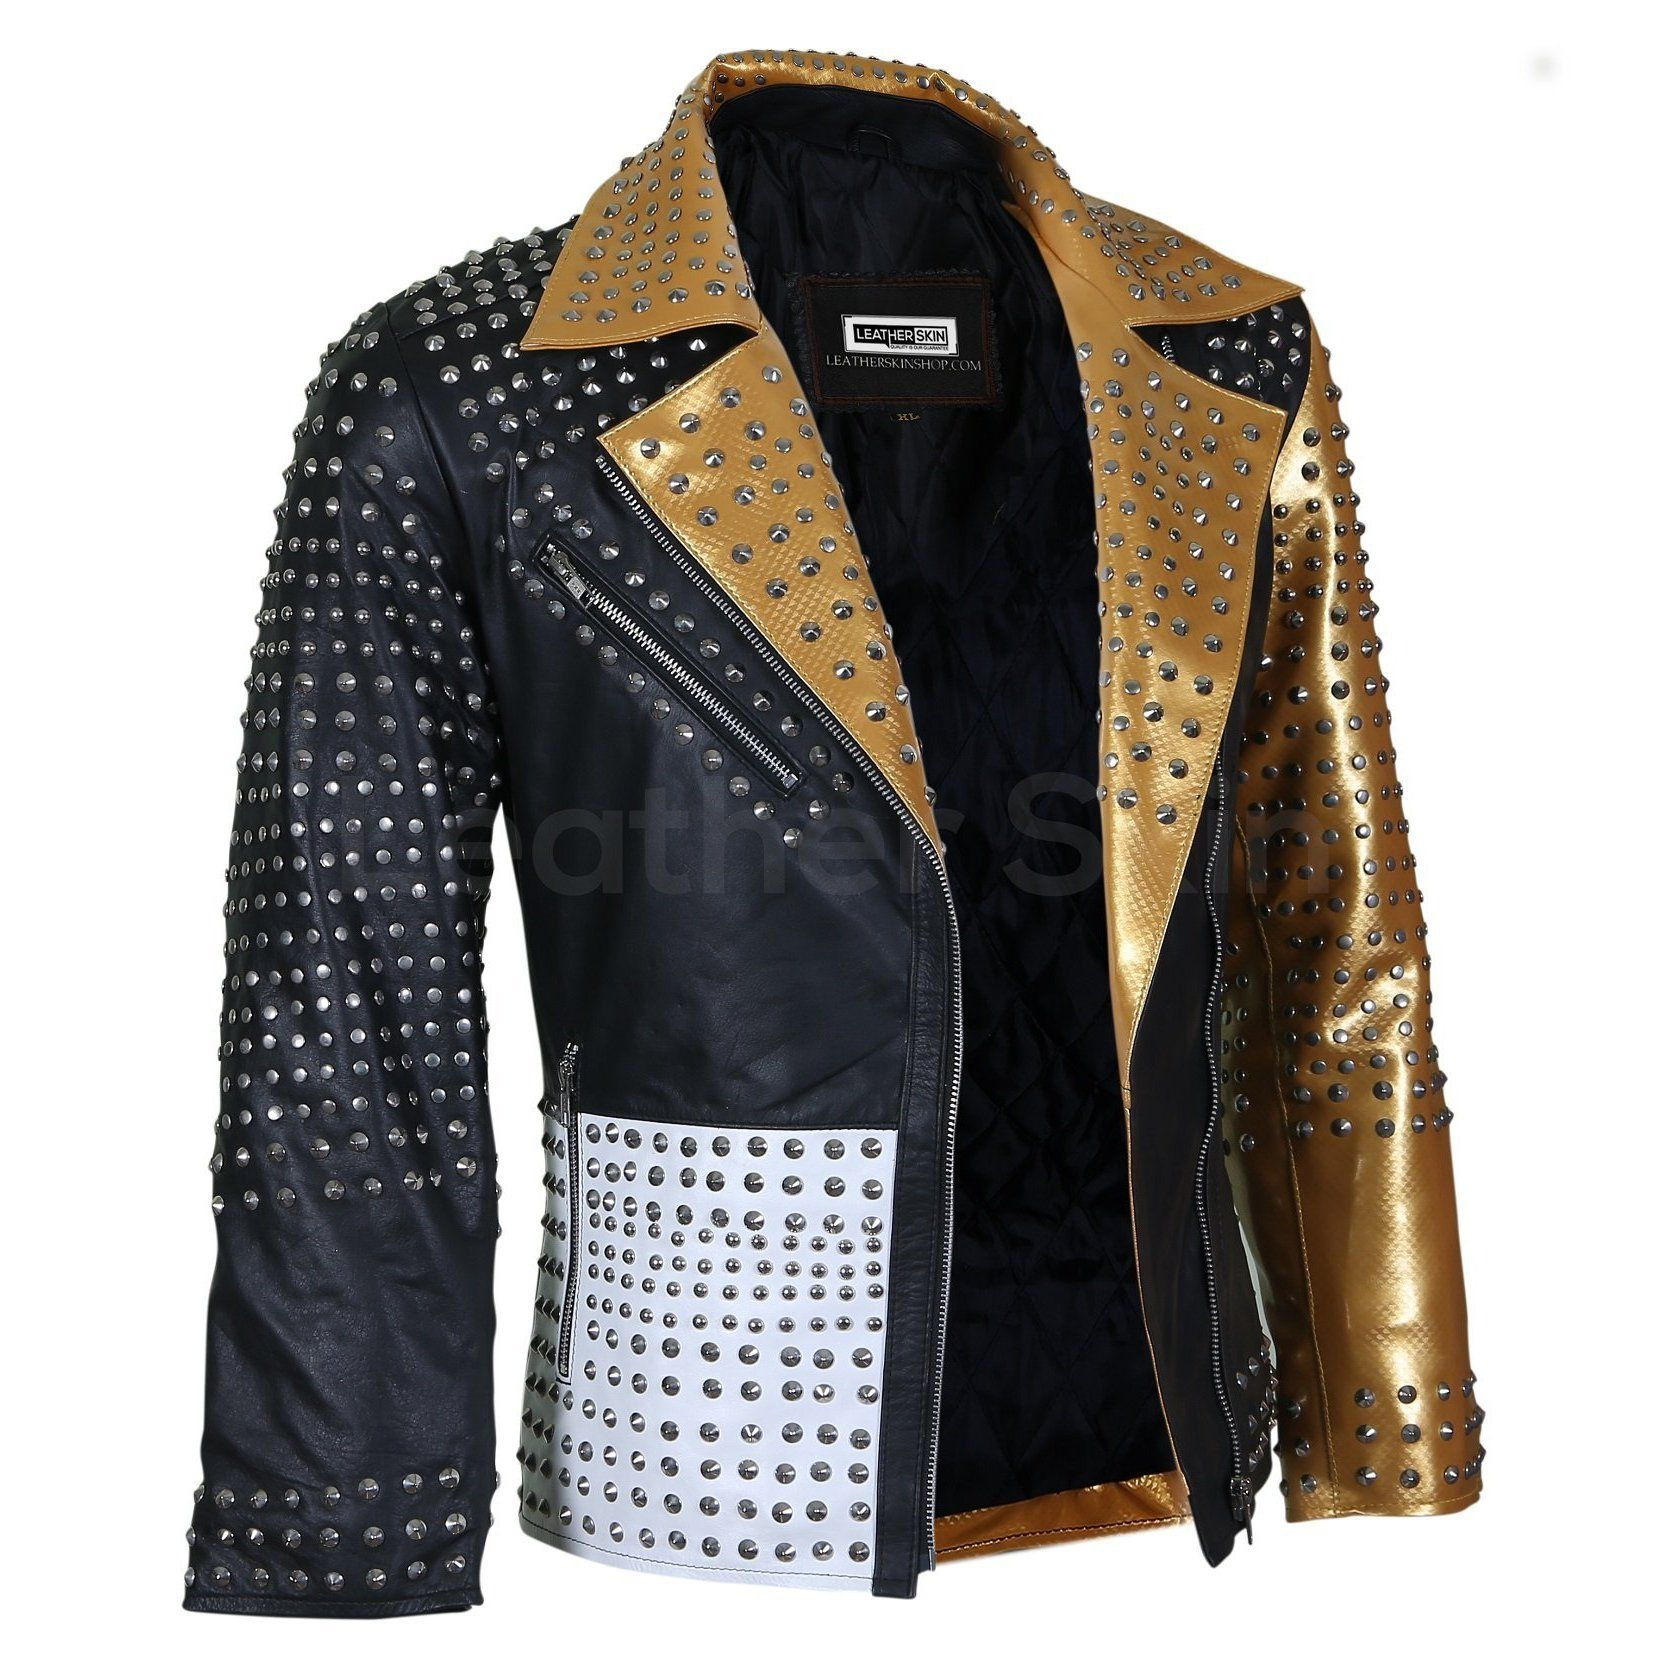 Women Black And Gold Leather Jacket With Cone Spikes Leather Jacket Spiked Leather Jacket Gold Leather [ 1669 x 1669 Pixel ]